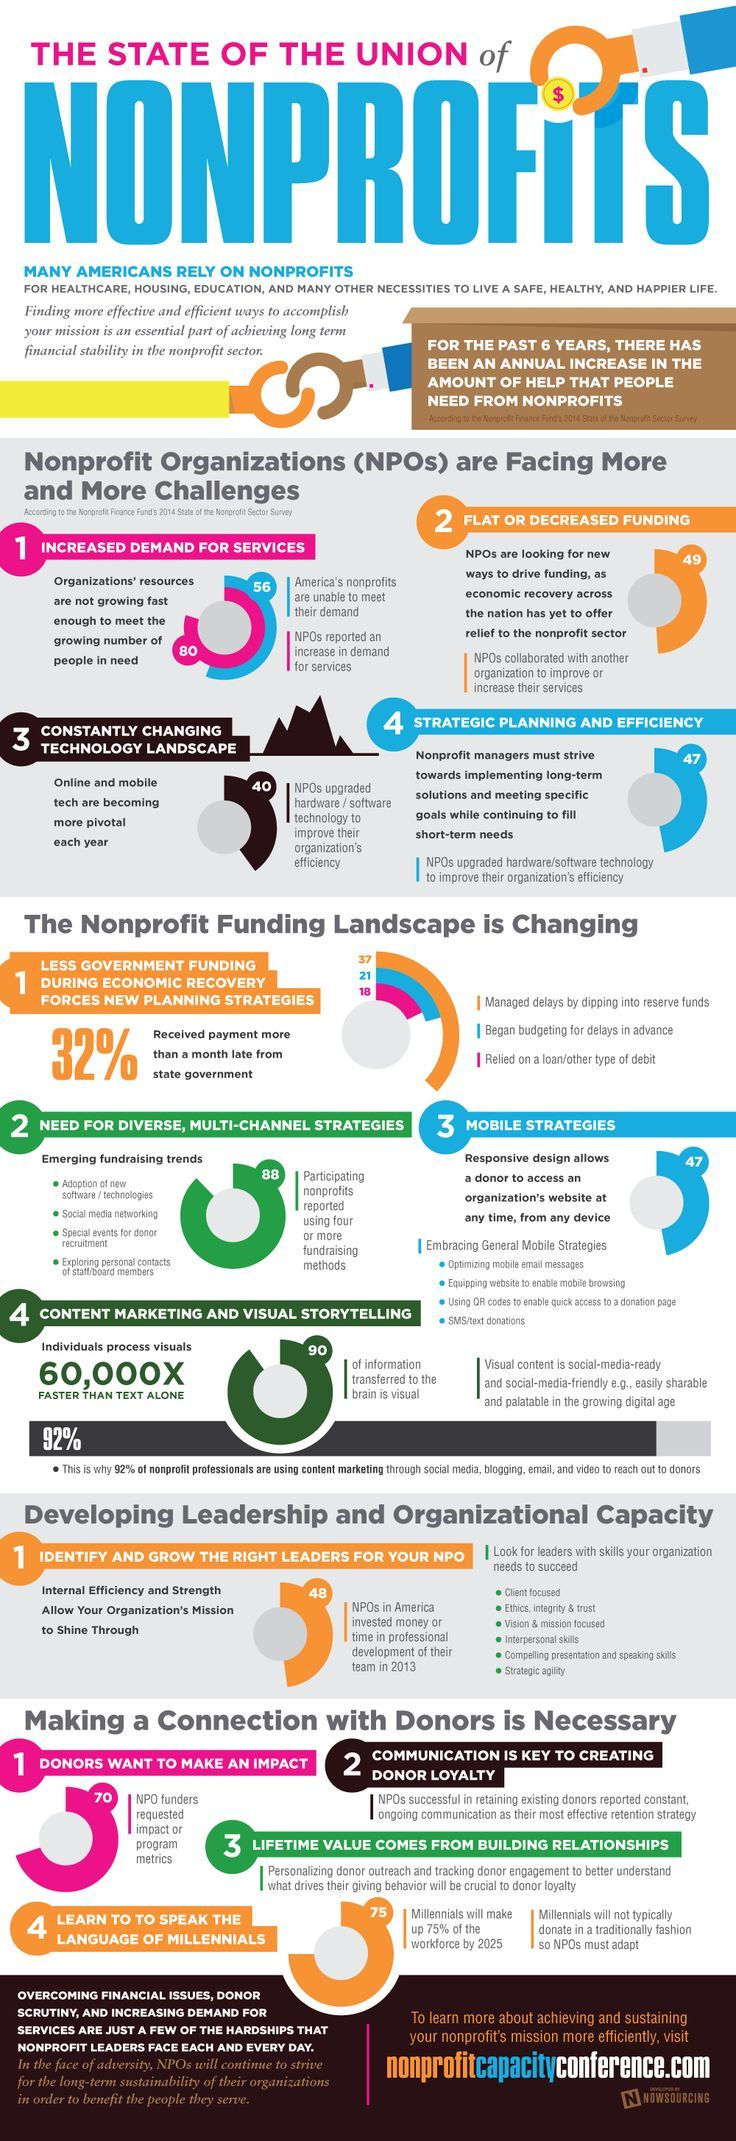 trends in fundraising essay How trend-watching can inspire fundraising and mindset you need to make things happen and practical tips on how to monitor and use trends for your.